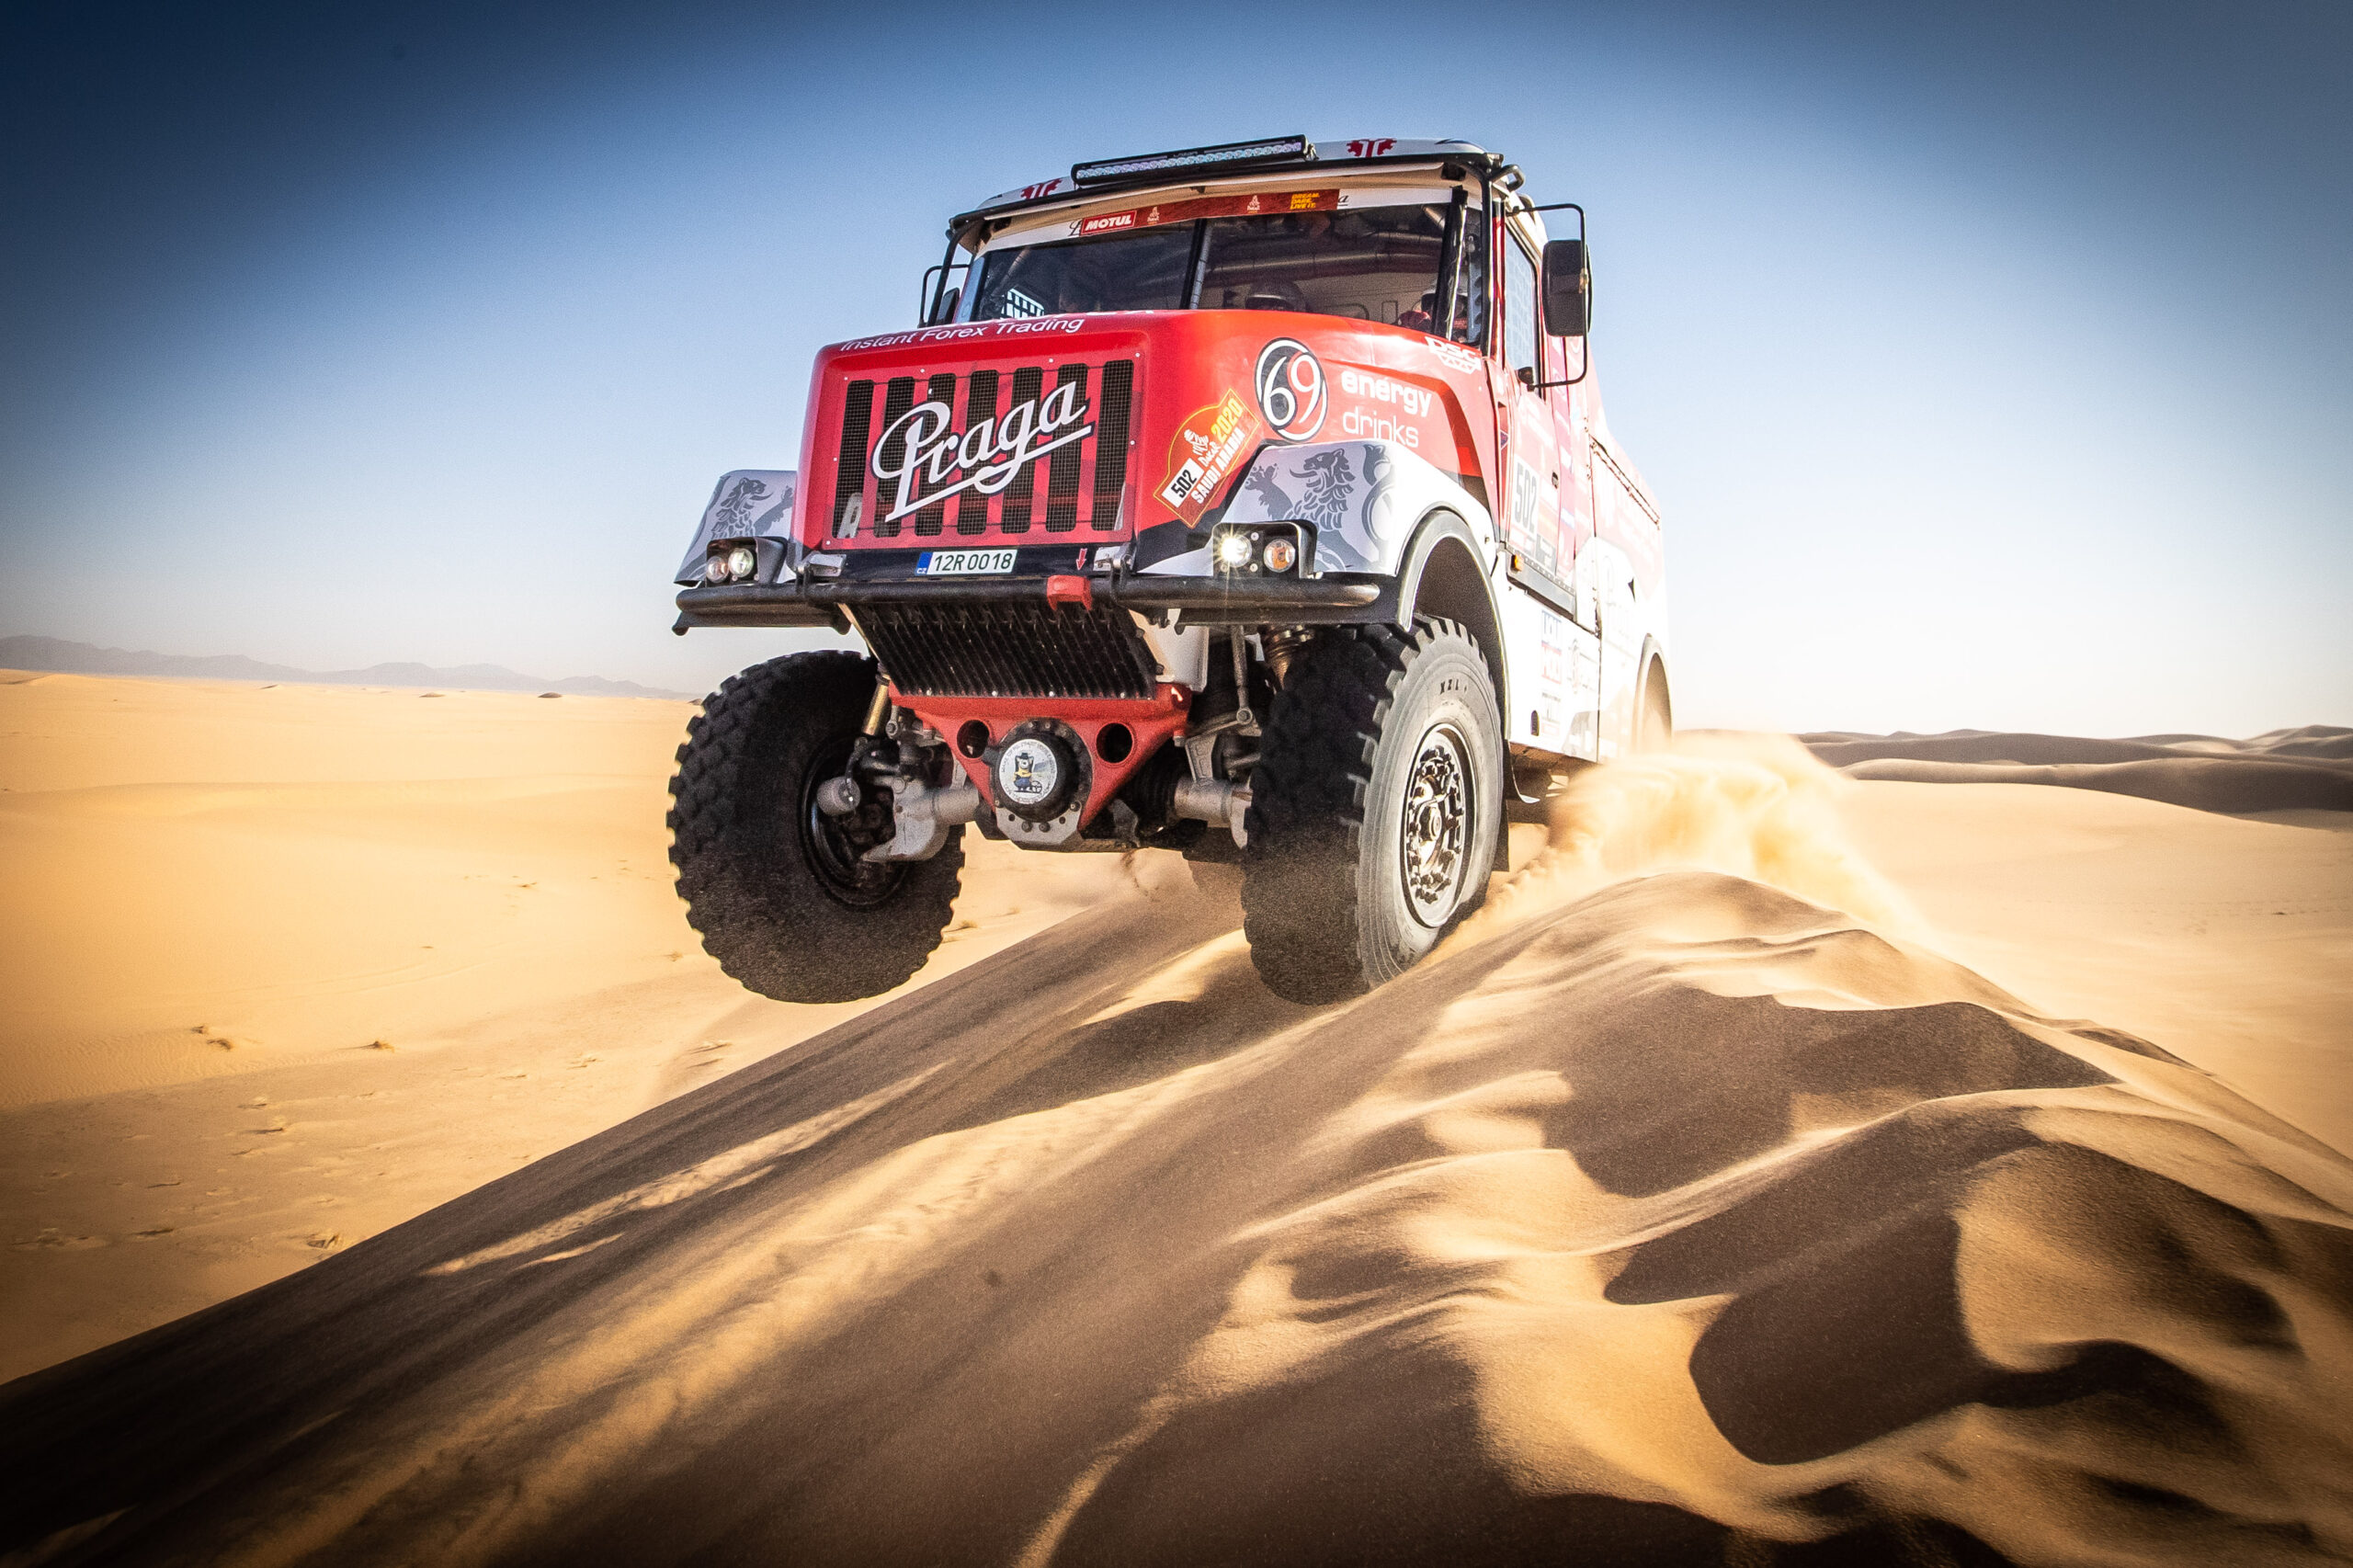 Instaforex Loprais Praga Team heads to Dakar 2021 with new strategy